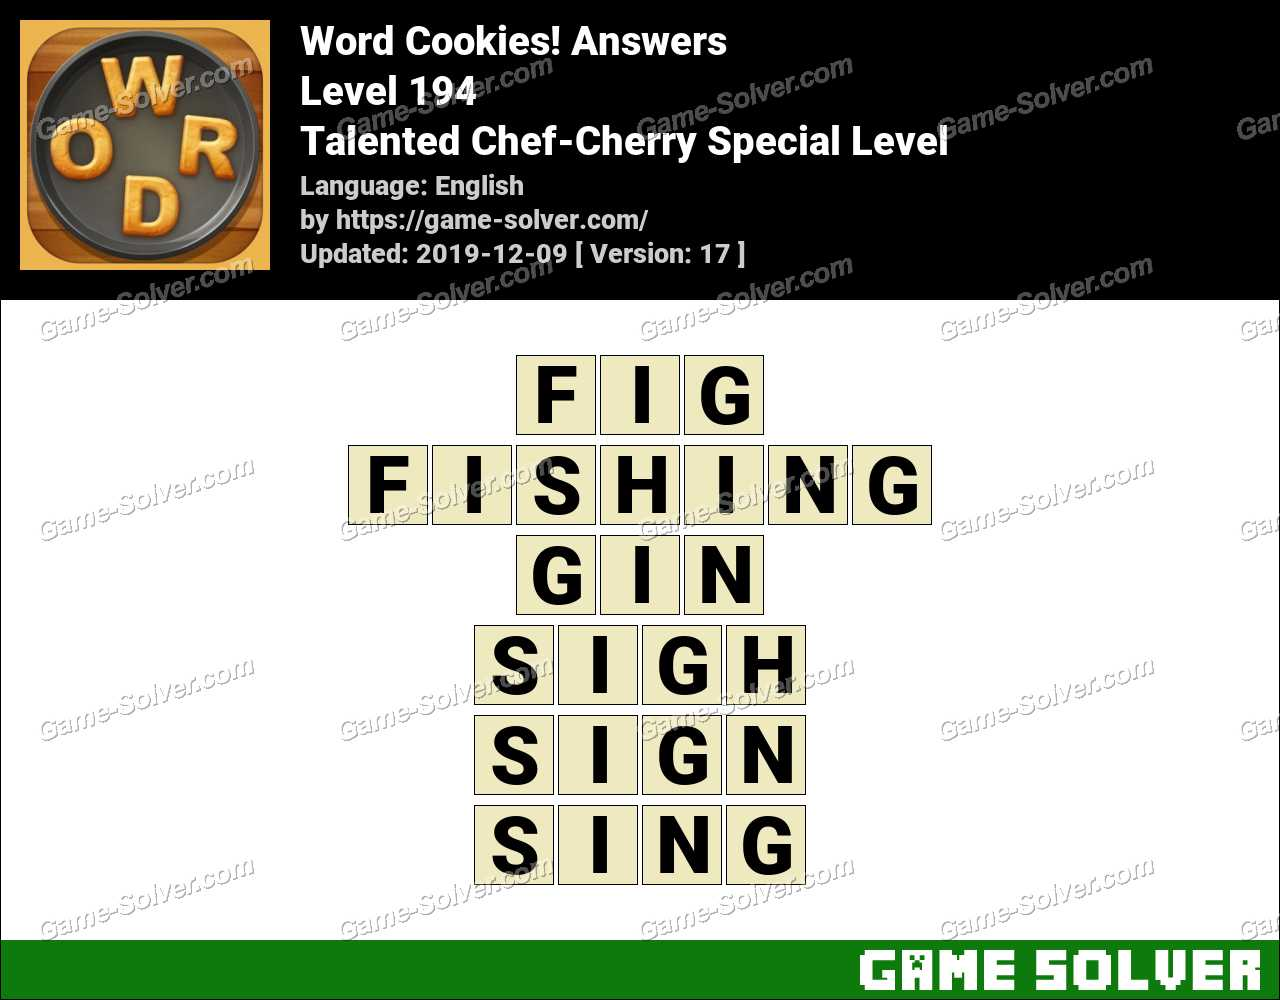 Word Cookies Talented Chef-Cherry Special Level Answers